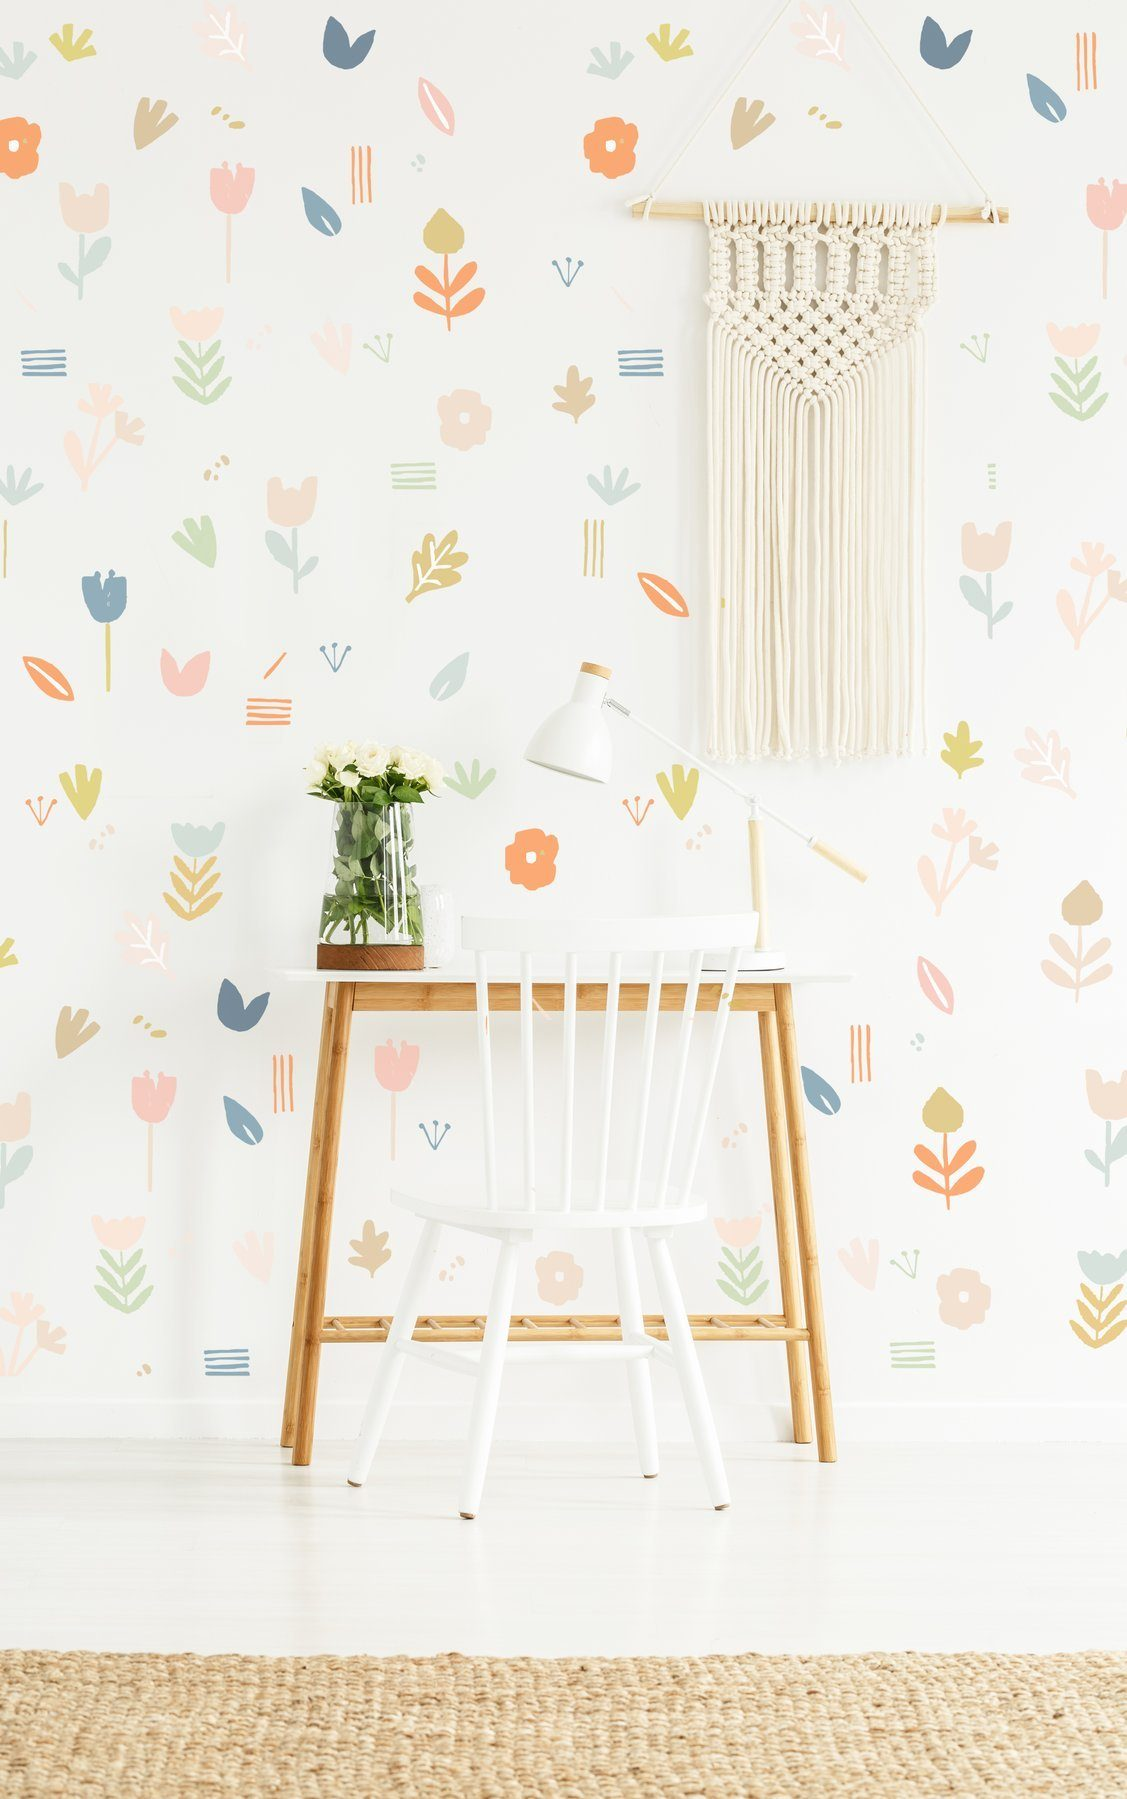 Sweet Flowers Wall Decal - Project Nursery